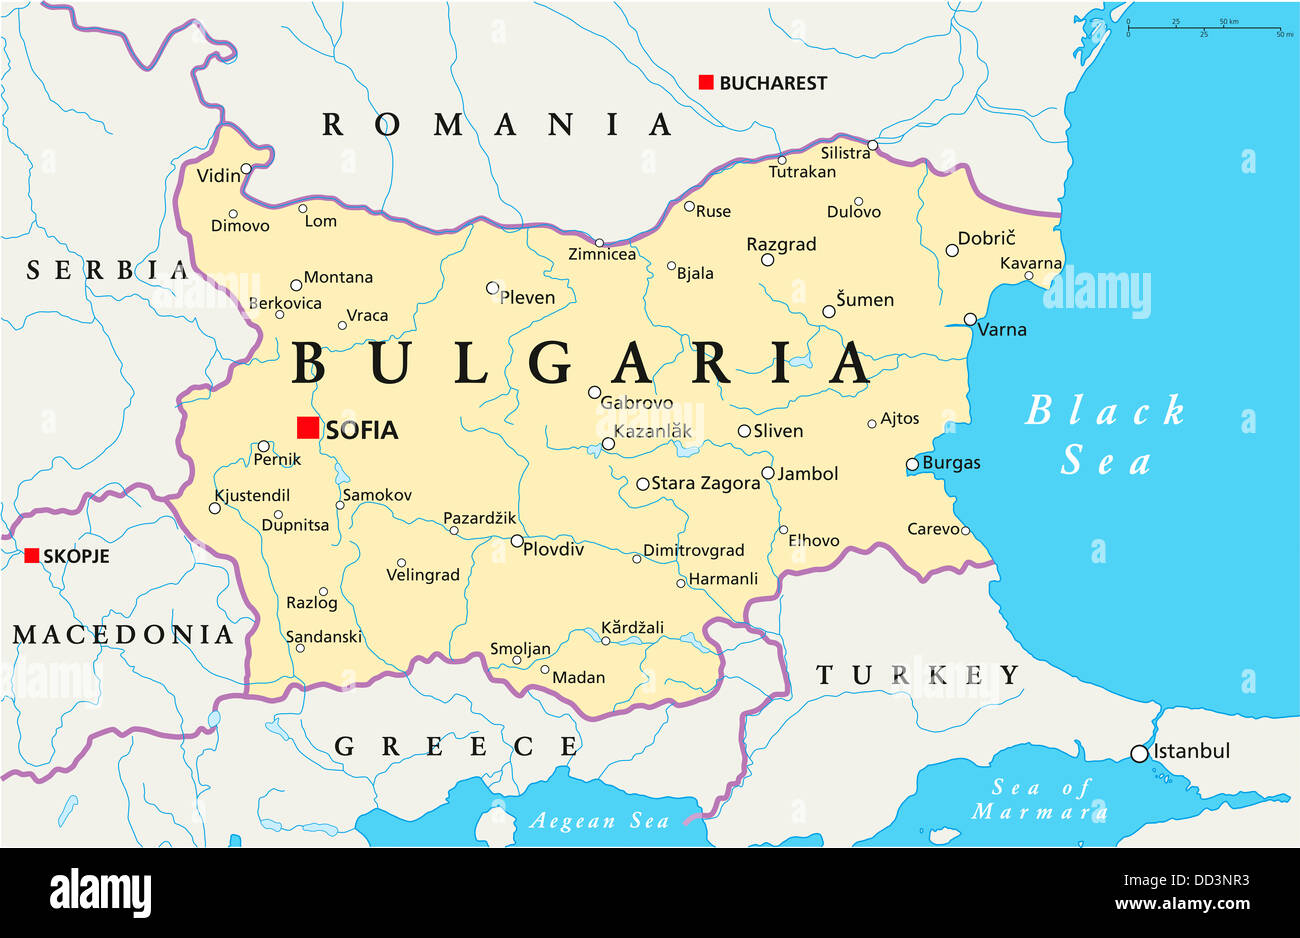 Political map of bulgaria with capital sofia national borders stock political map of bulgaria with capital sofia national borders important cities rivers lakes english labeling and scale gumiabroncs Gallery